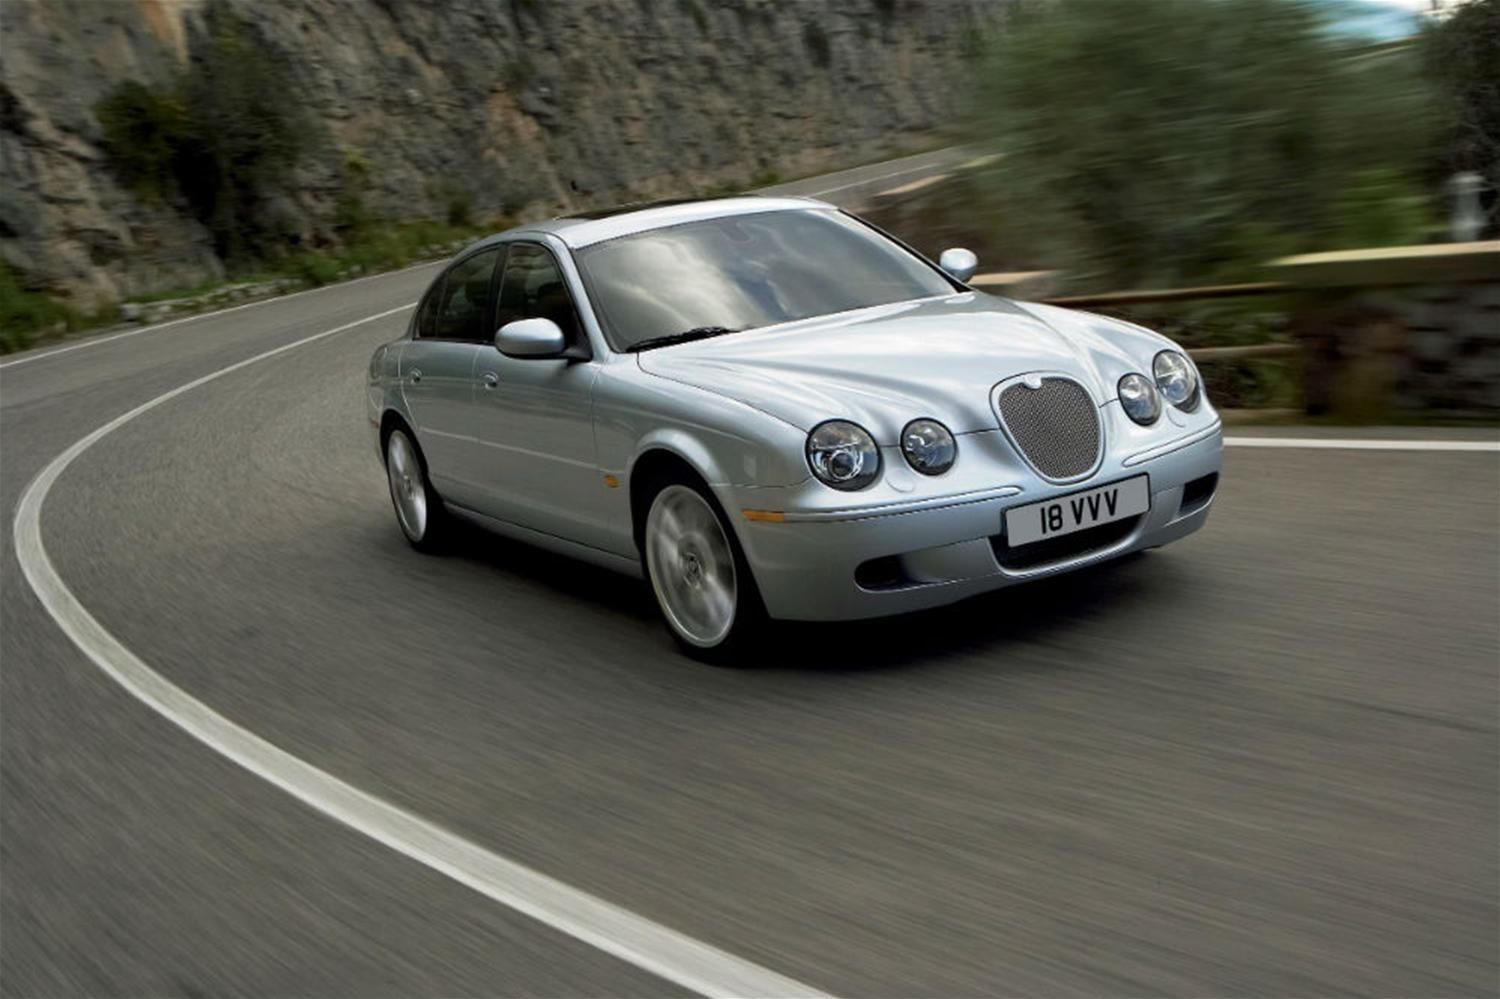 Best used saloon cars for under £10,000